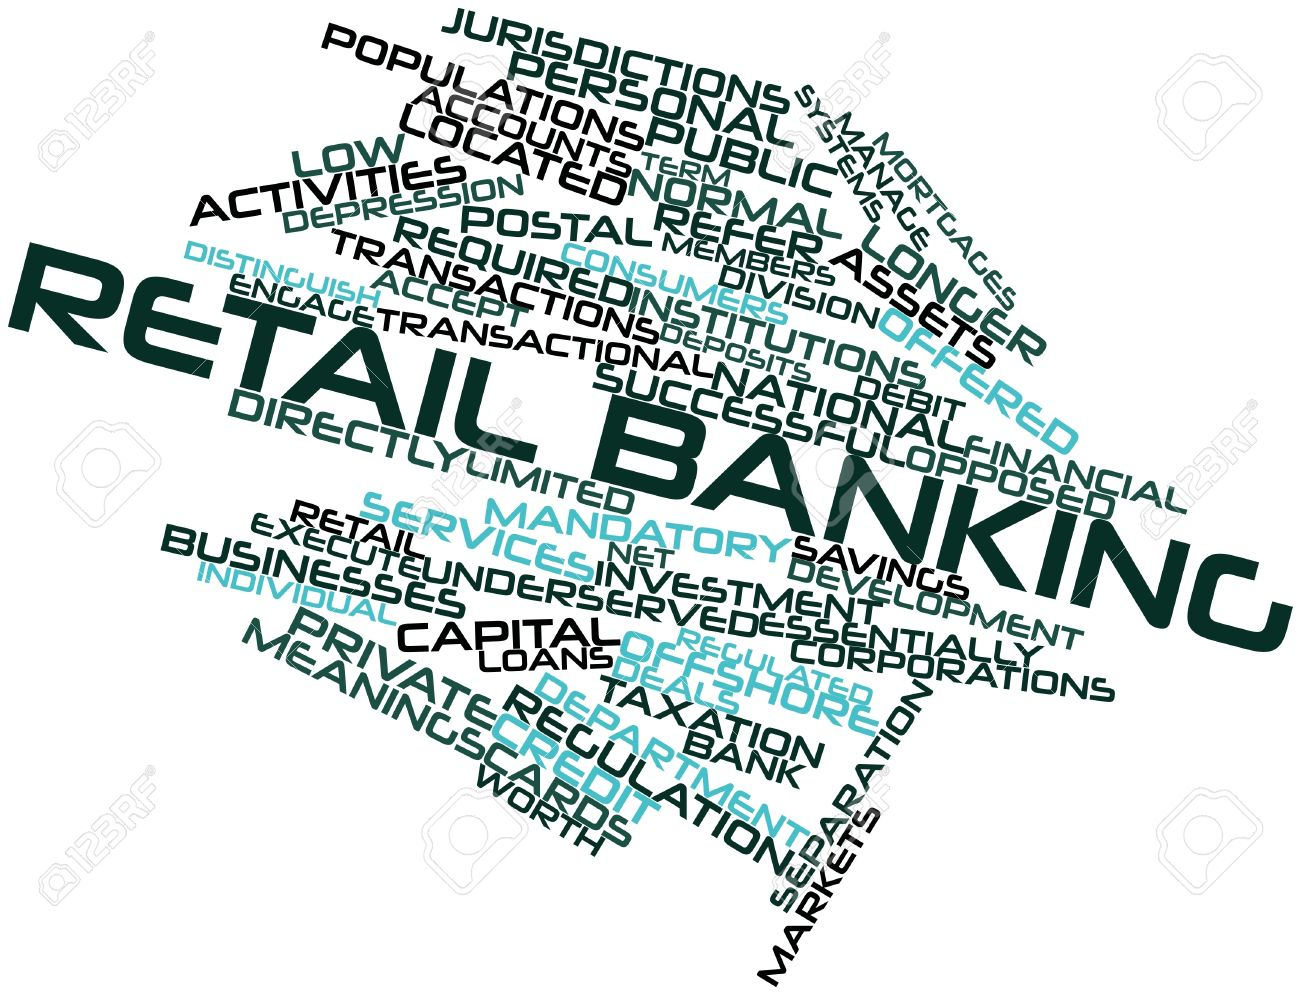 DOMESTIC OPERATION FOR RETAIL BANKING